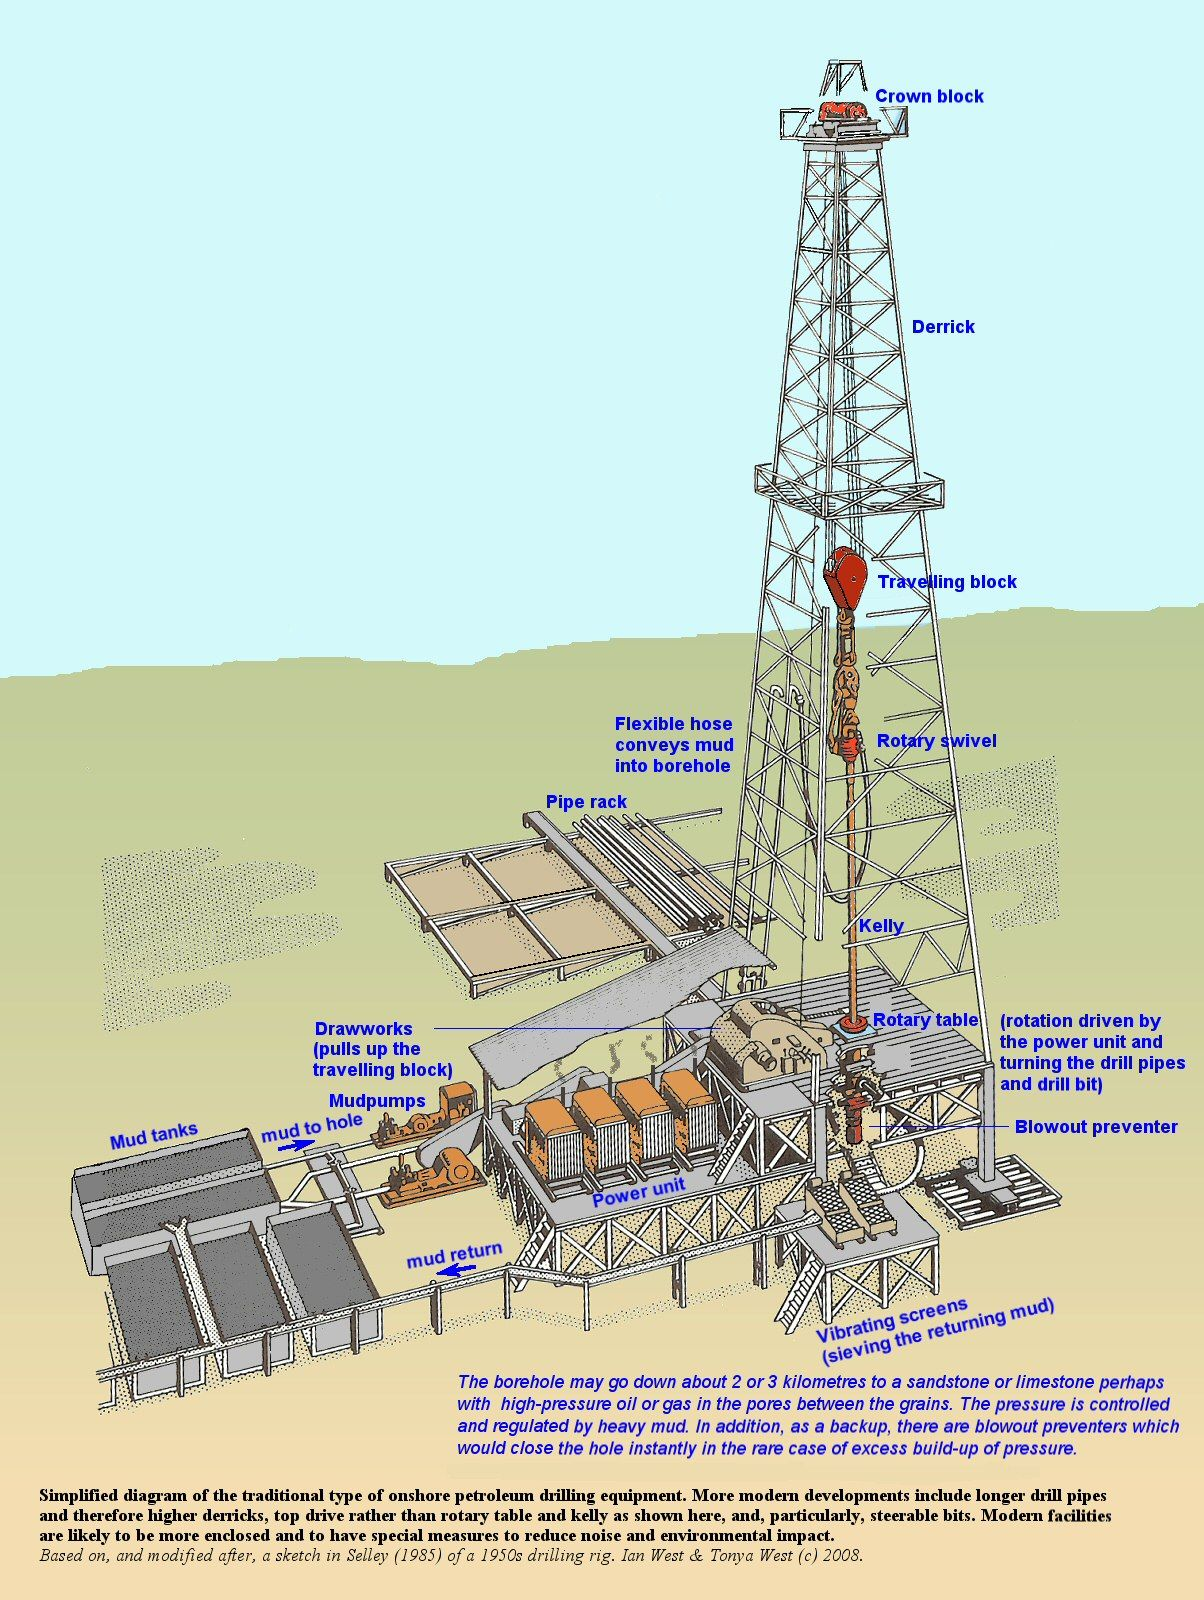 Pin by Cave Man on Nature Science | Petroleum engineering, Oil, gas